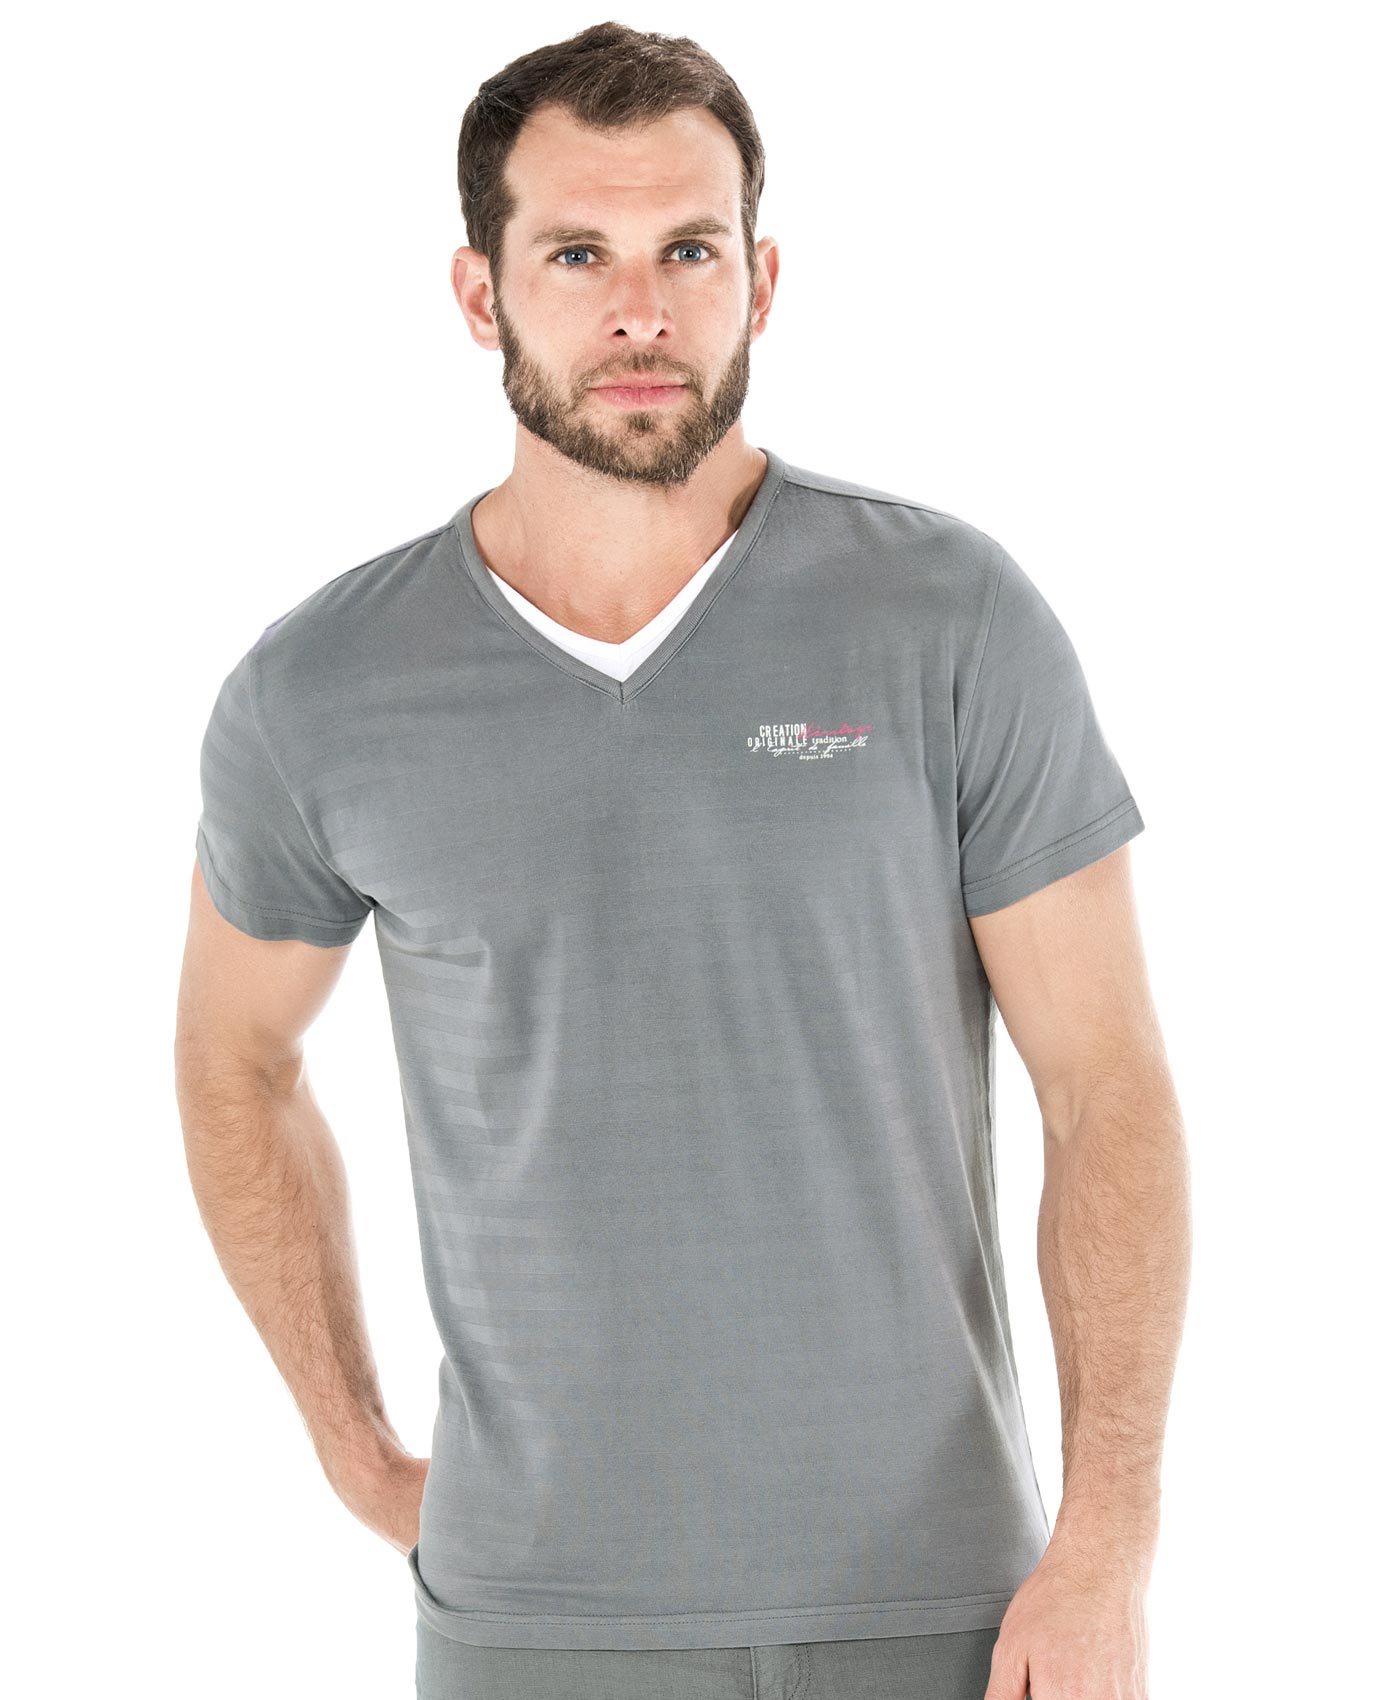 Tee-shirt manches courtes homme rayé gris - Mode marine Homme